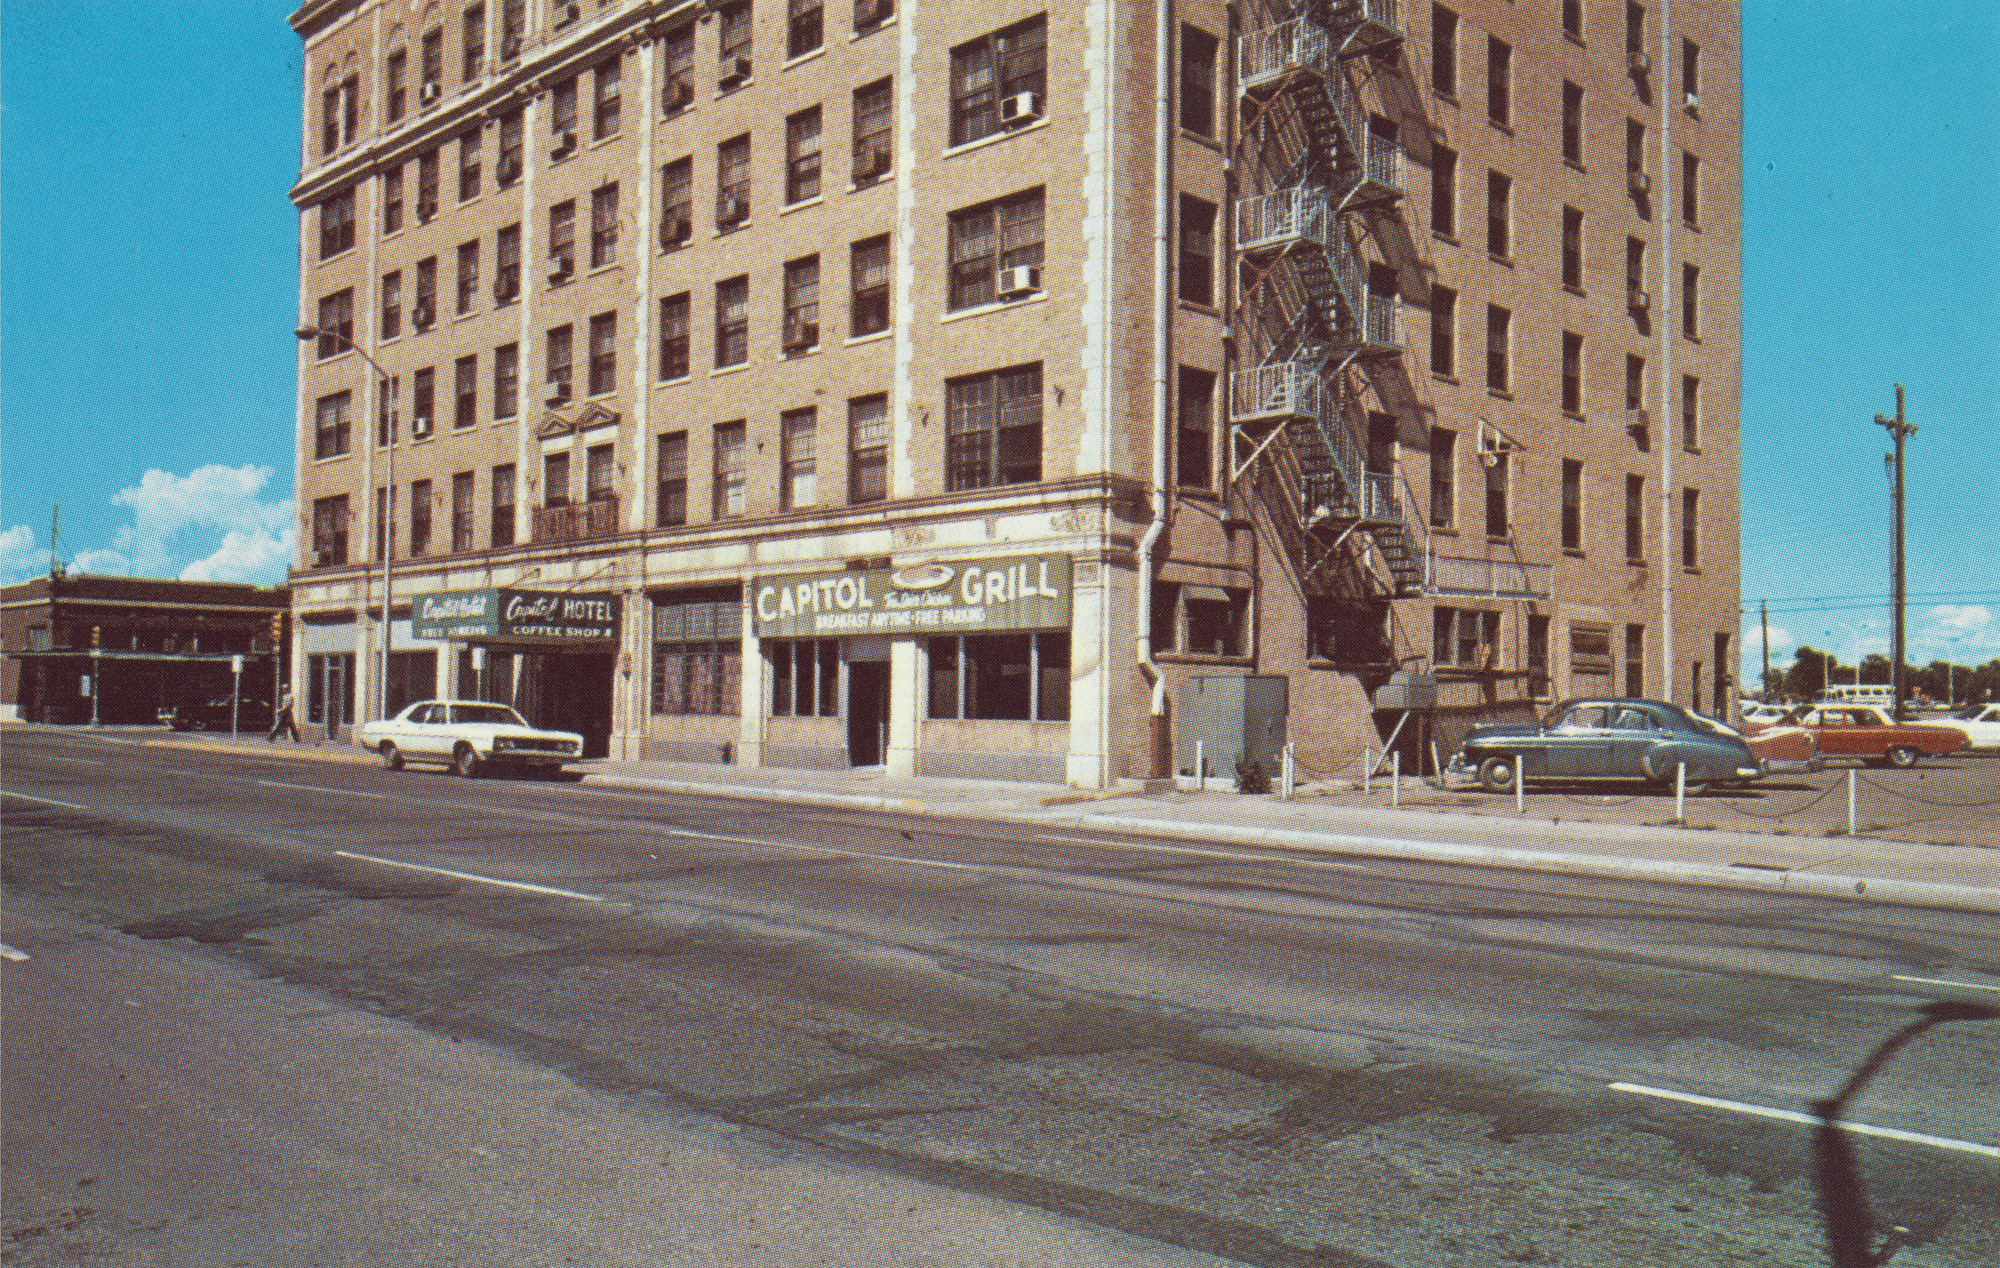 Stephen Shore. Capitol Hotel, 401 S. Pierce. 1971